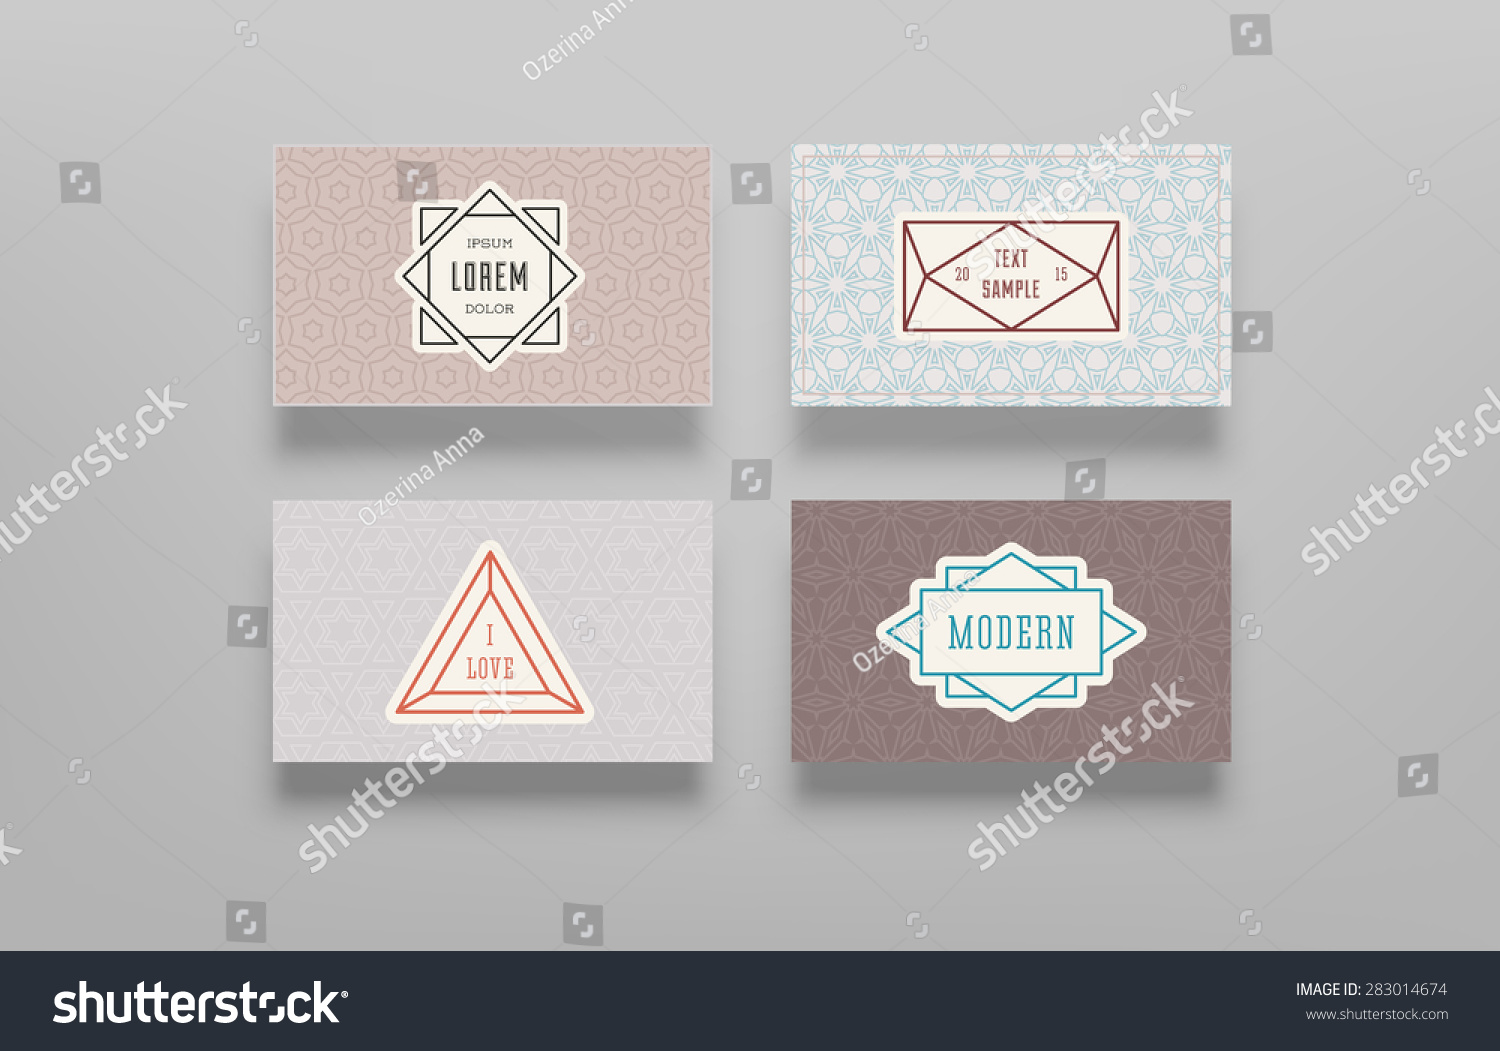 Graphic Design Templates Logo Labels Badges Stock Vector 283014674 ...